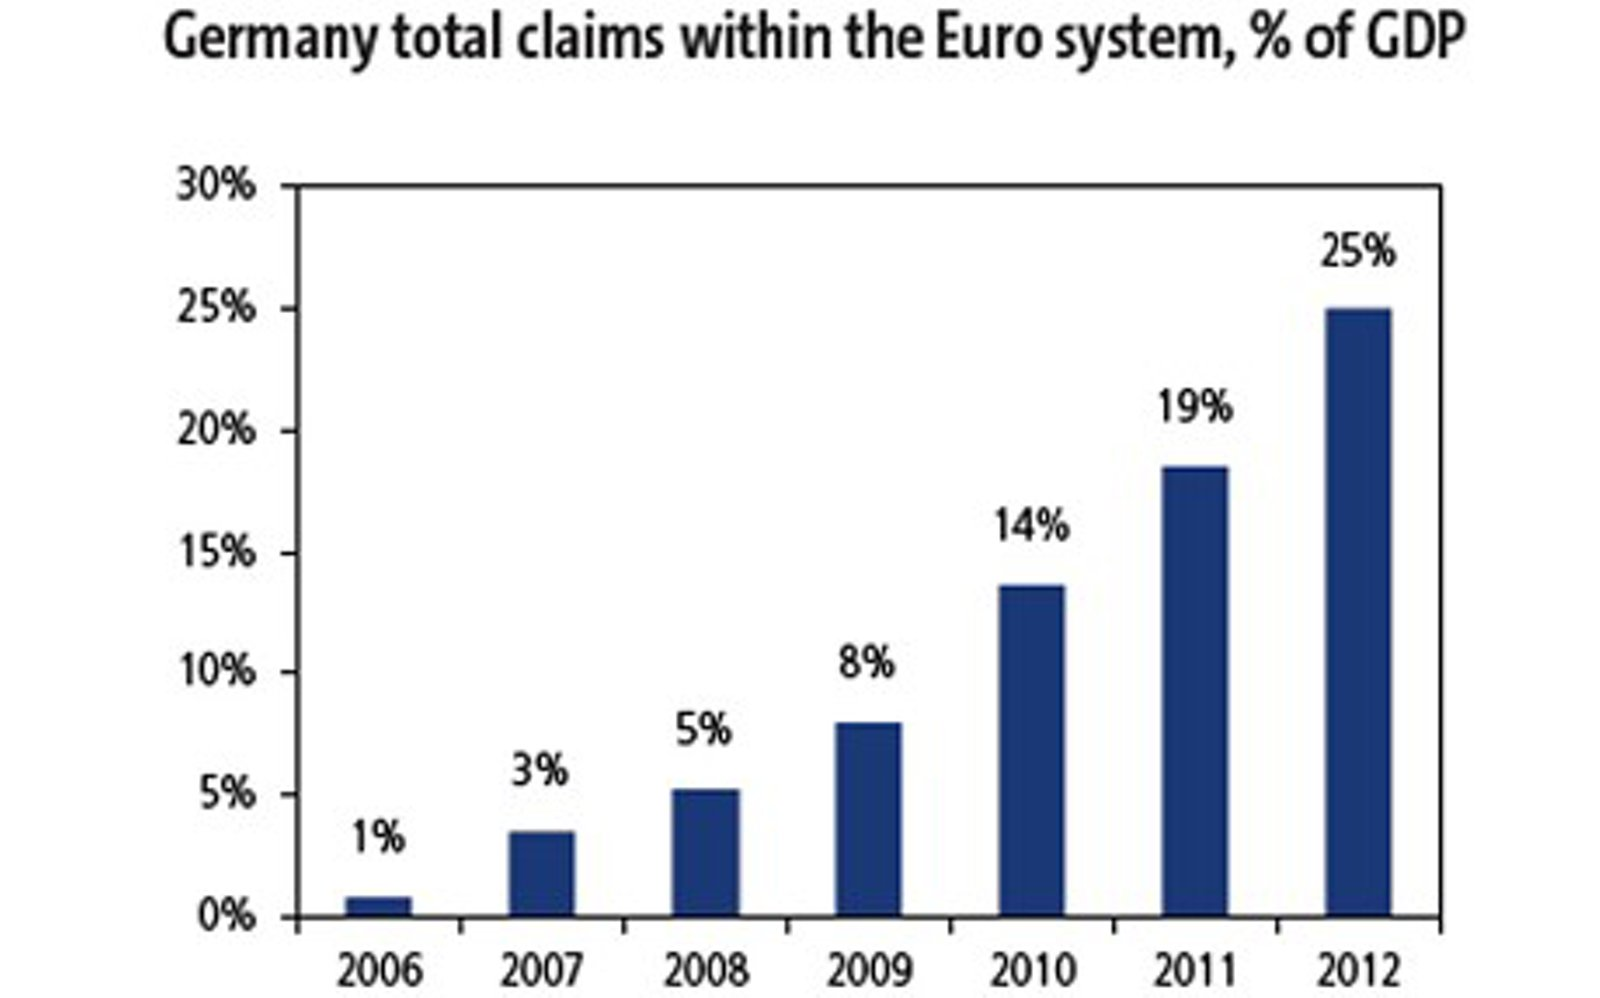 http://einarbb.blog.is/users/72/einarbb/img/germany_total_claims_within_the_ez_system.jpg